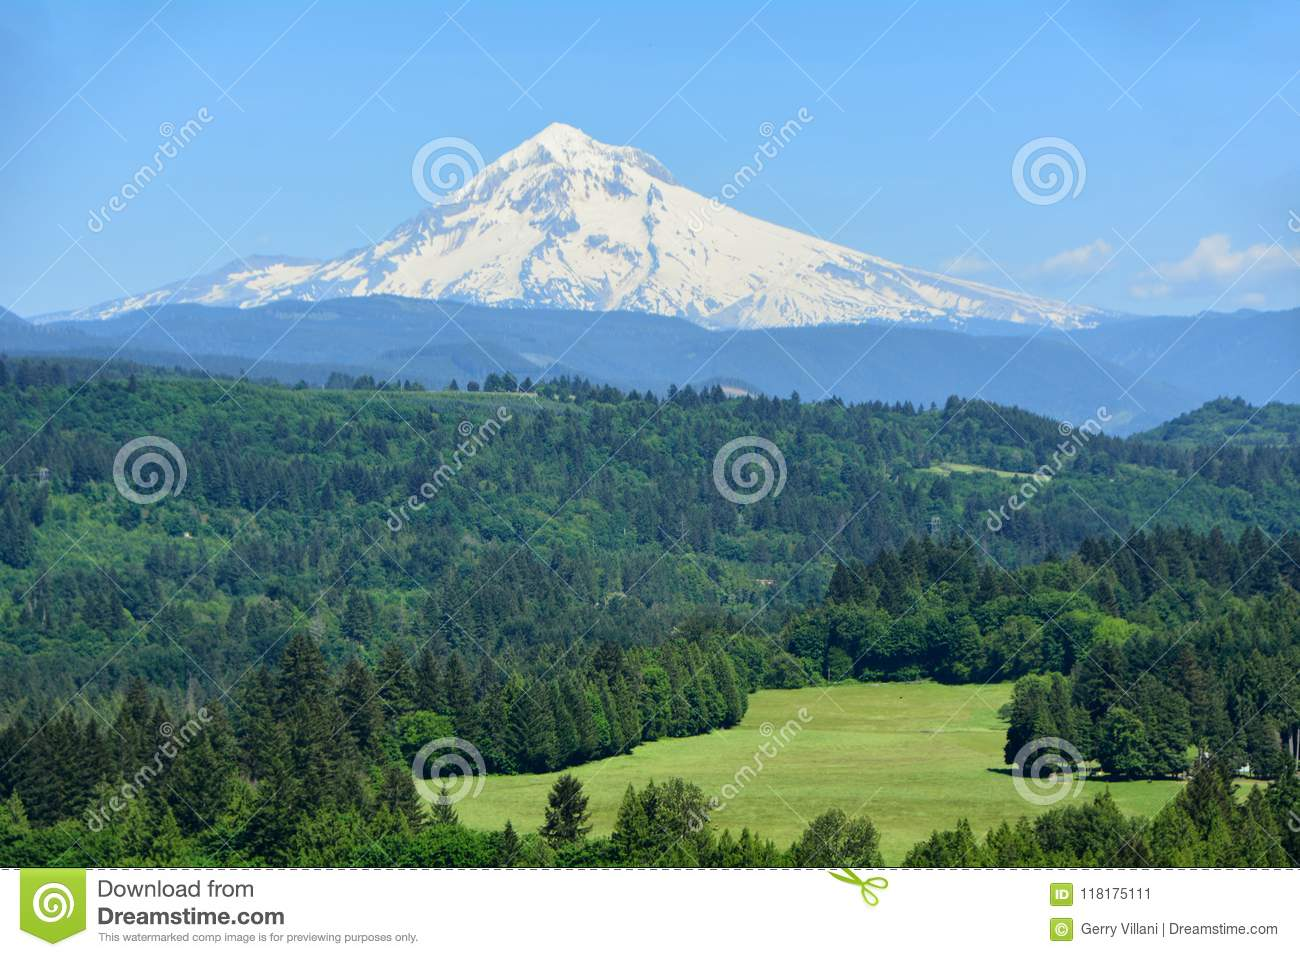 Download Mt. Hood From Jonsrud Point, Oregon Image 1 Stock Image - Image of bull, green: 118175111